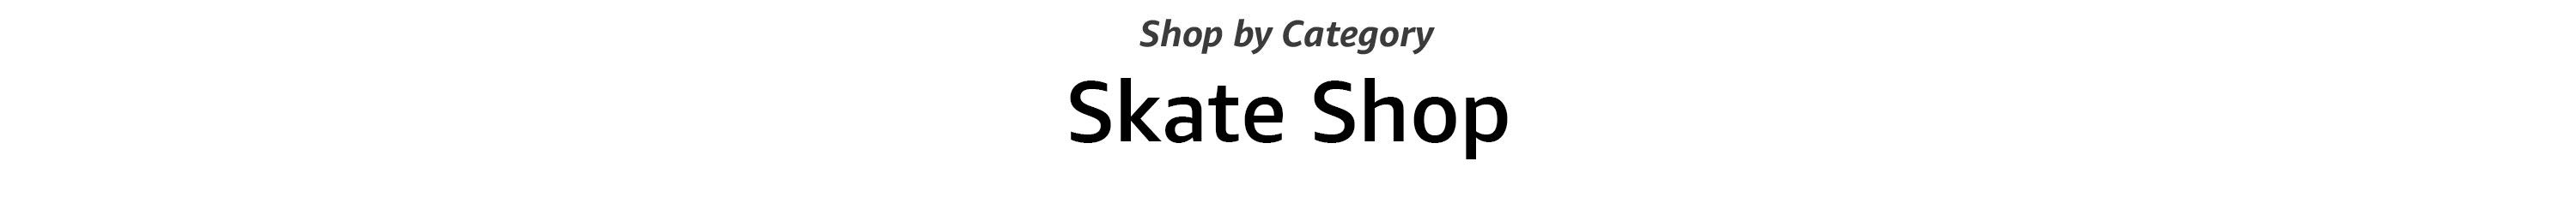 Shop by Category in Skates, Skateboards, Scooters & more